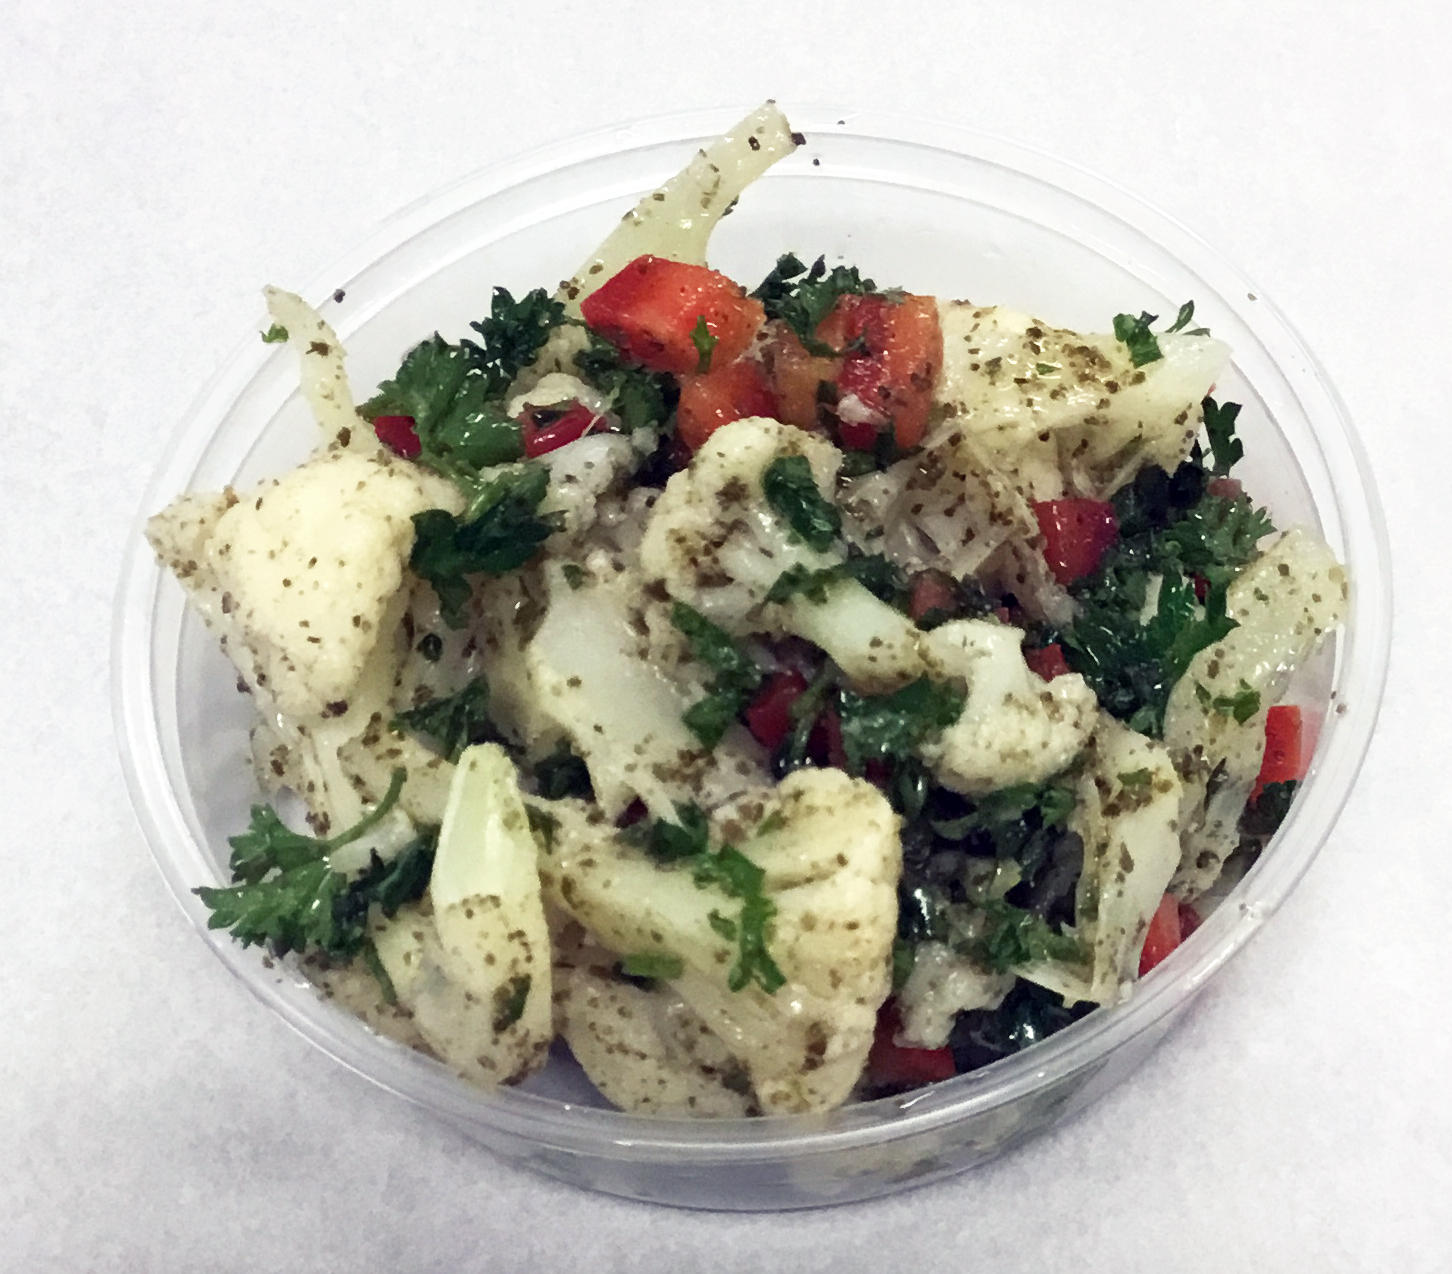 Cauliflower boiled salad with pepper, parsley, kelp  and brown rice vinegar dressing